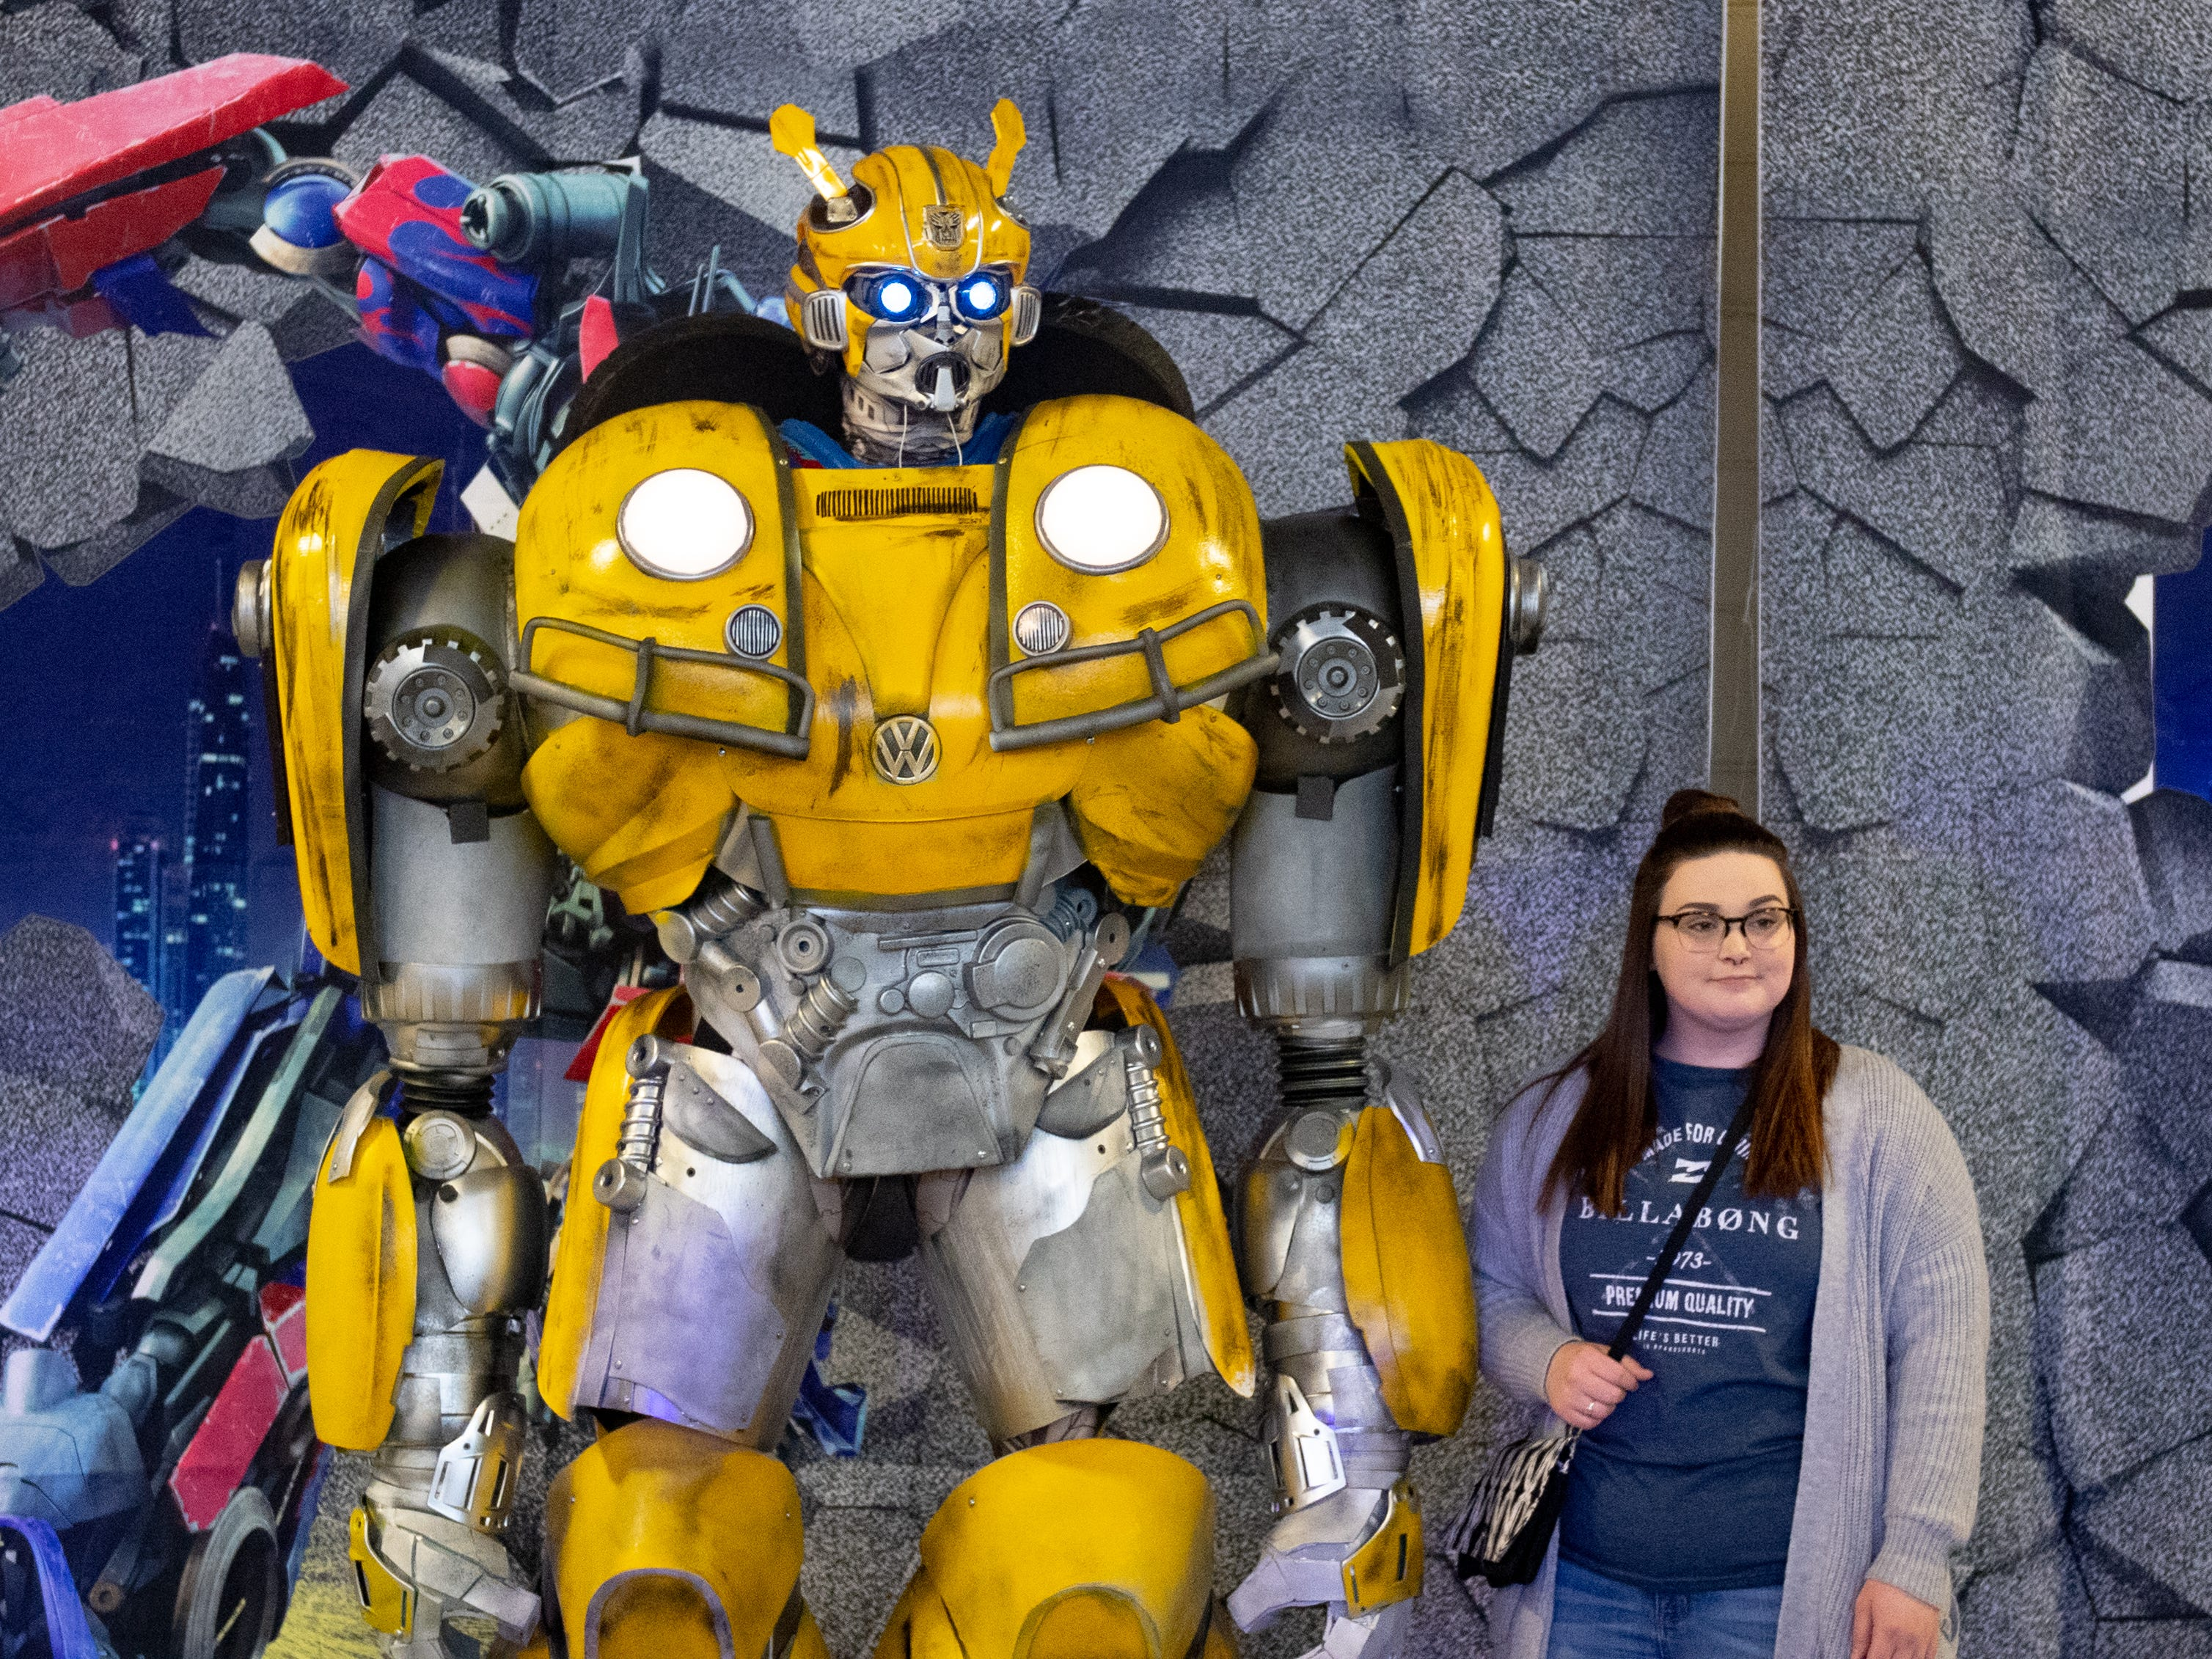 Guests take pictures with Bumblebee from Transformers during the 2019 Pennsylvania Auto Show, Saturday, January 26, 2019 at the Pennsylvania Farm Show Complex & Expo Center. The auto show continues on Sunday from 10 a.m. to 5 p.m.